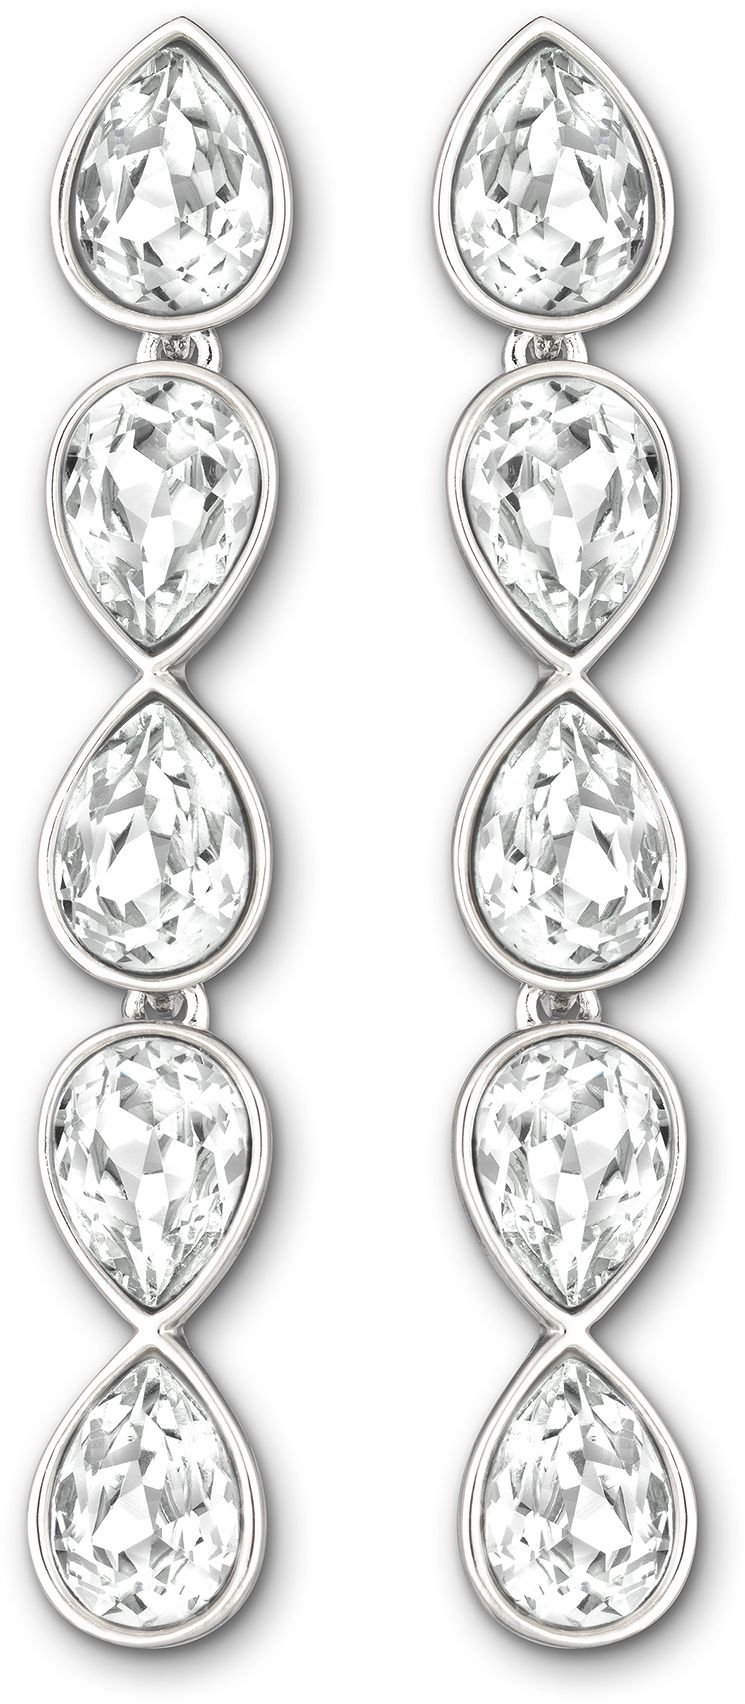 Talesia pierced earrings